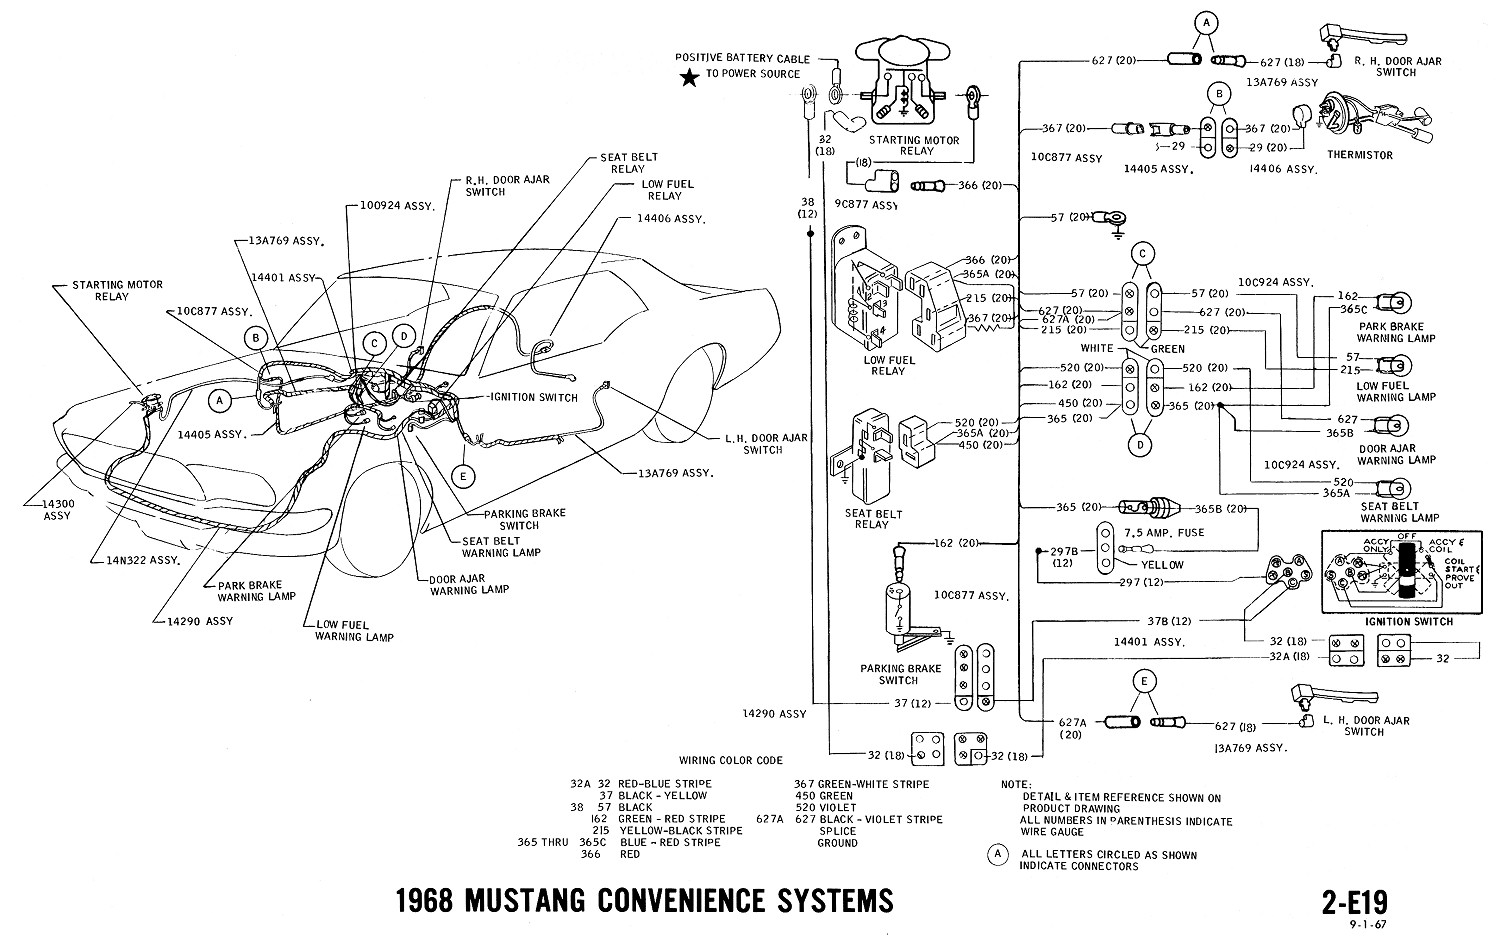 1969 Cougar Ignition Wiring Diagram Electrical House Images Gallery